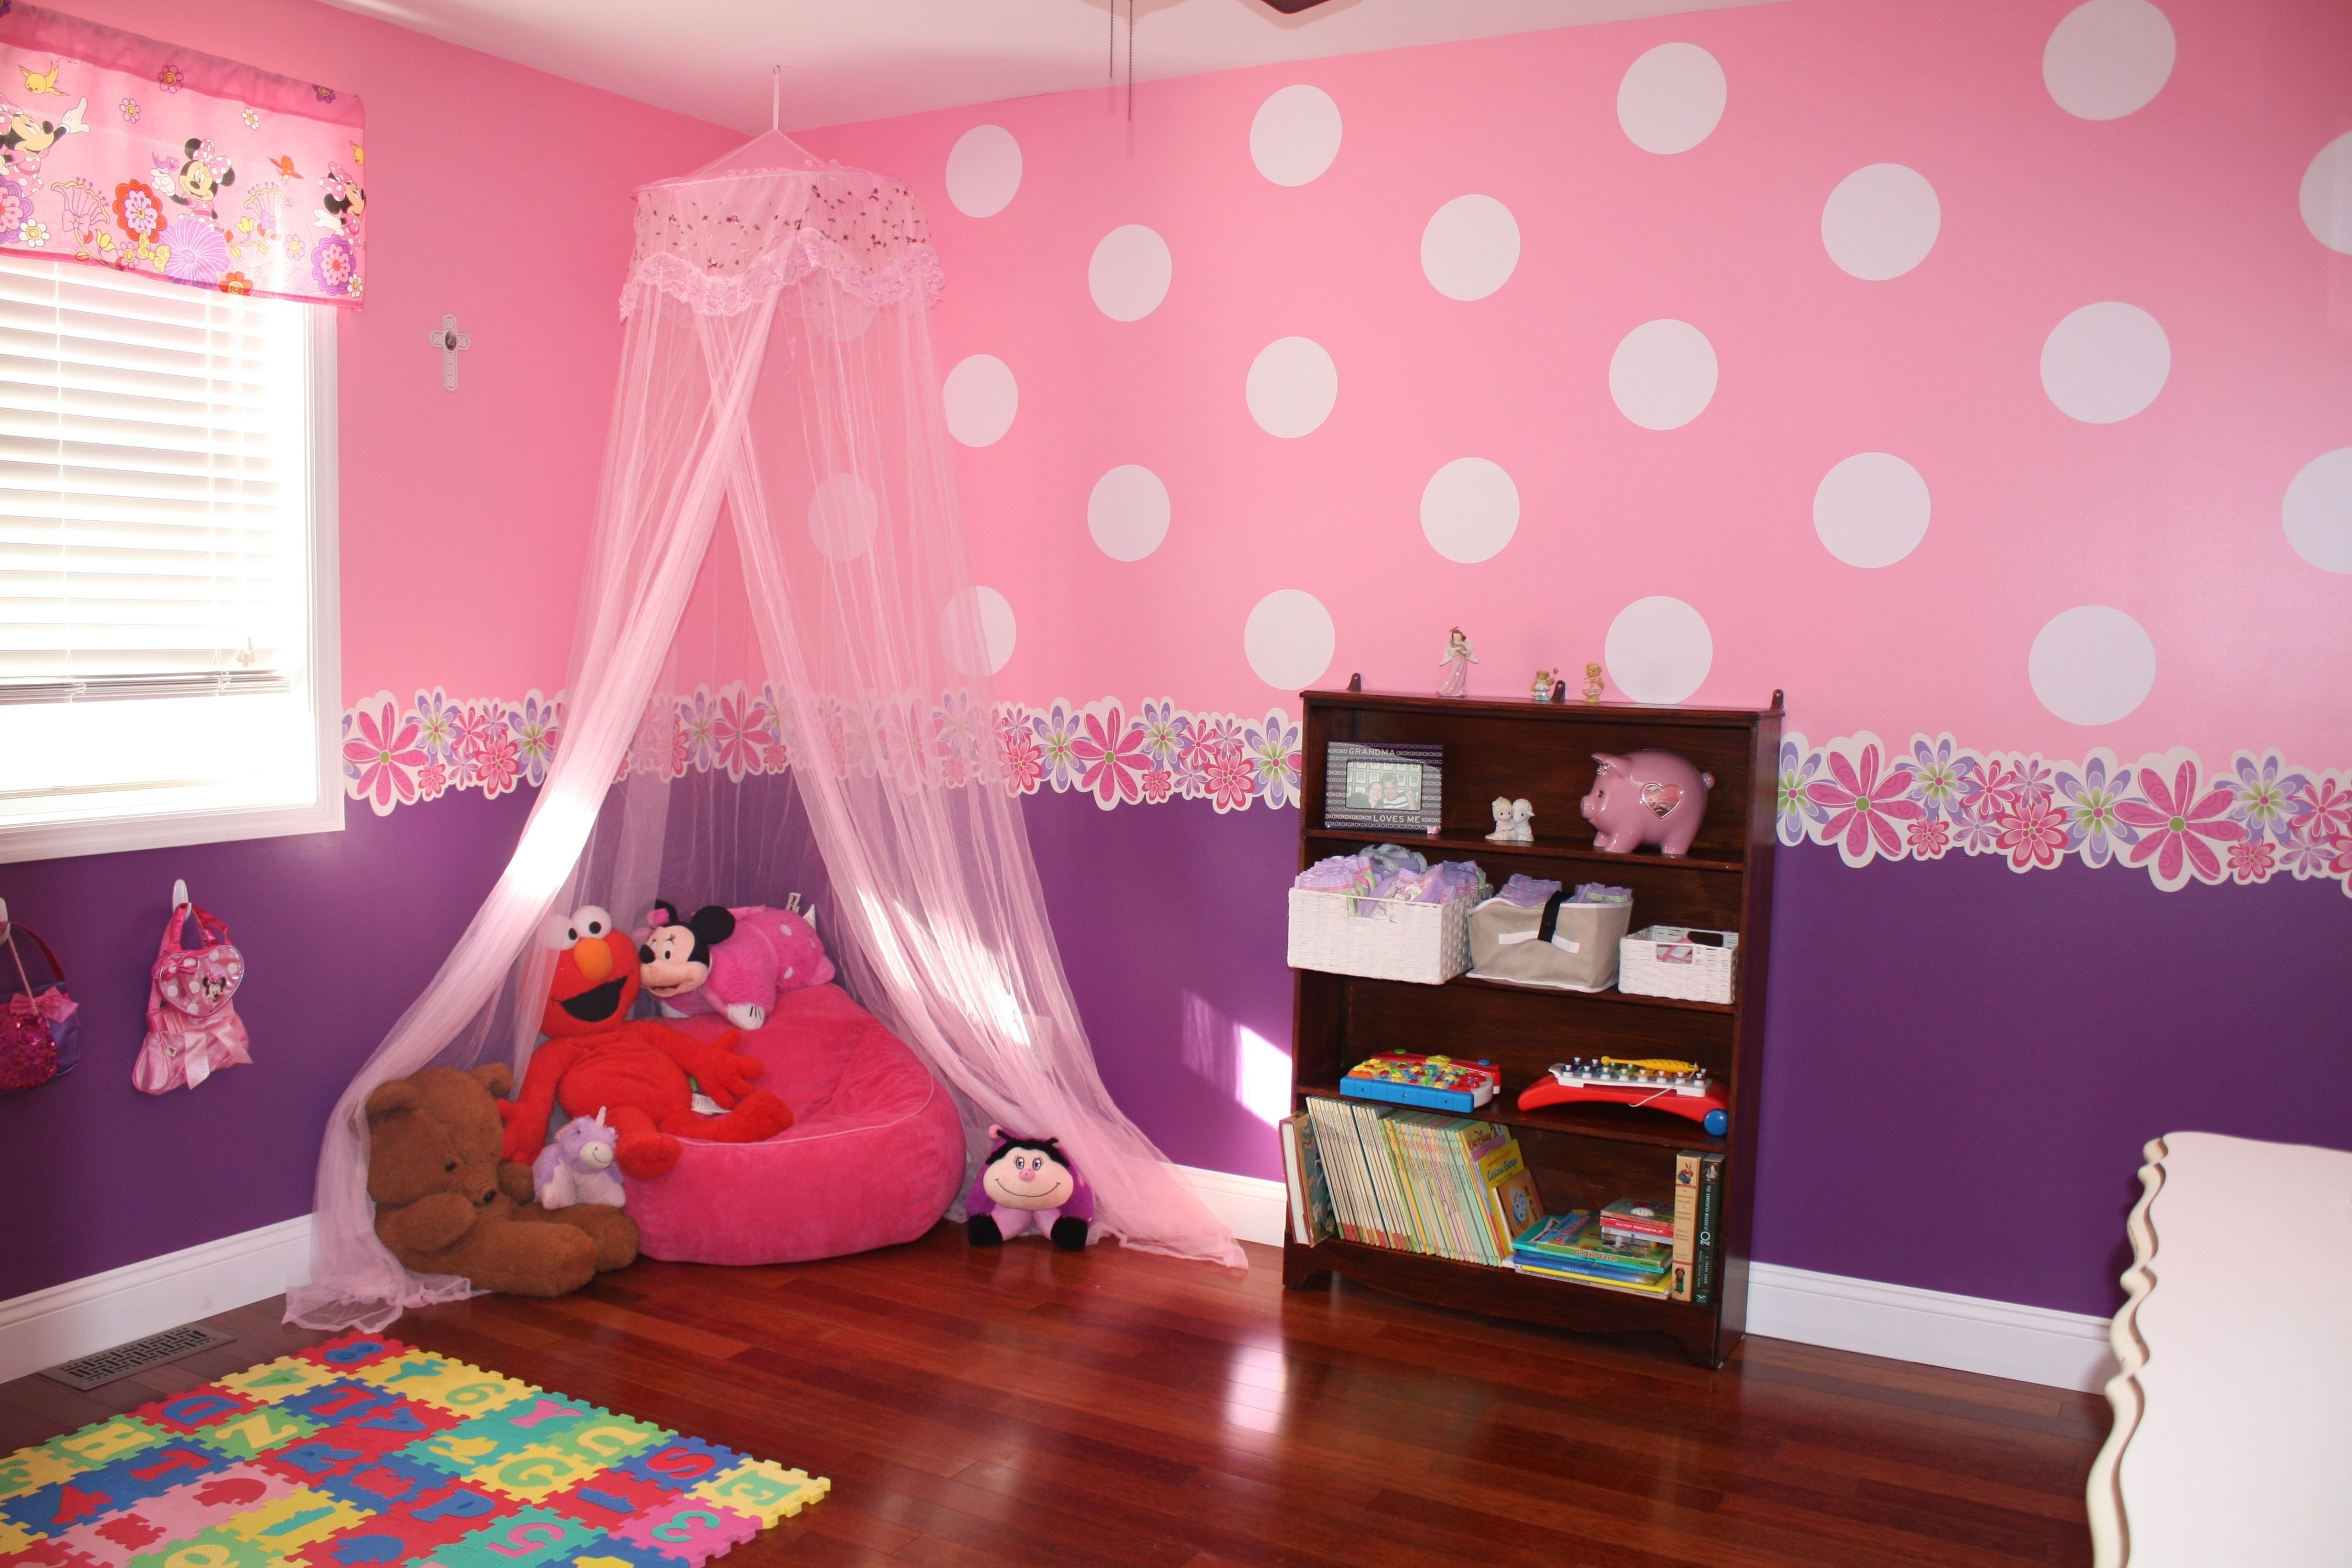 10 Stylish Minnie Mouse Room Decor Ideas toddler minnie mouse bedroom reading nook little girls room 2020